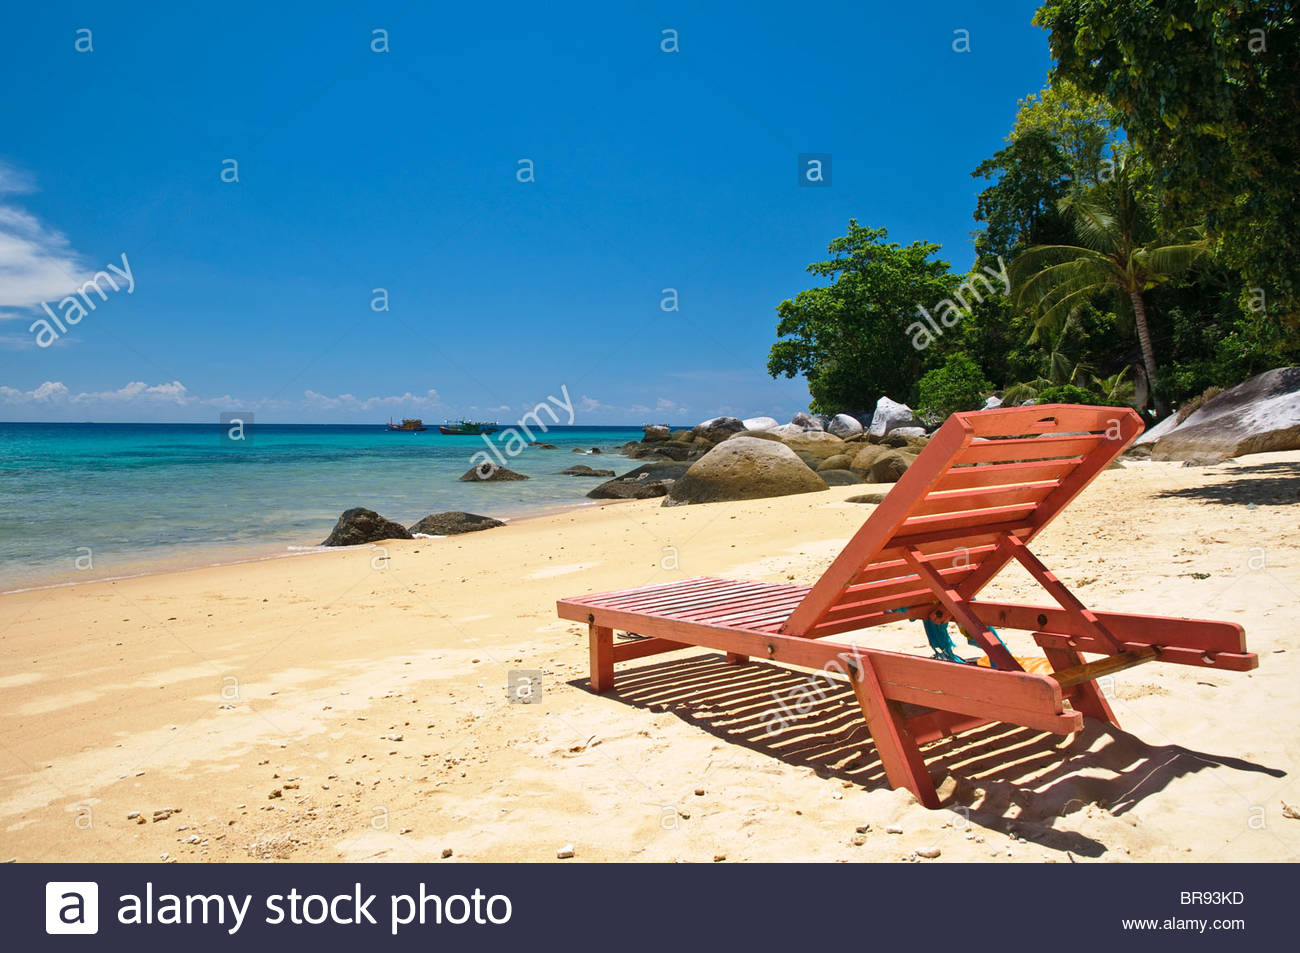 Red beach chair on the beach of Panuba, Pulau Tioman Island, Malaysia, Southeast Asia, Asia Stock Photo